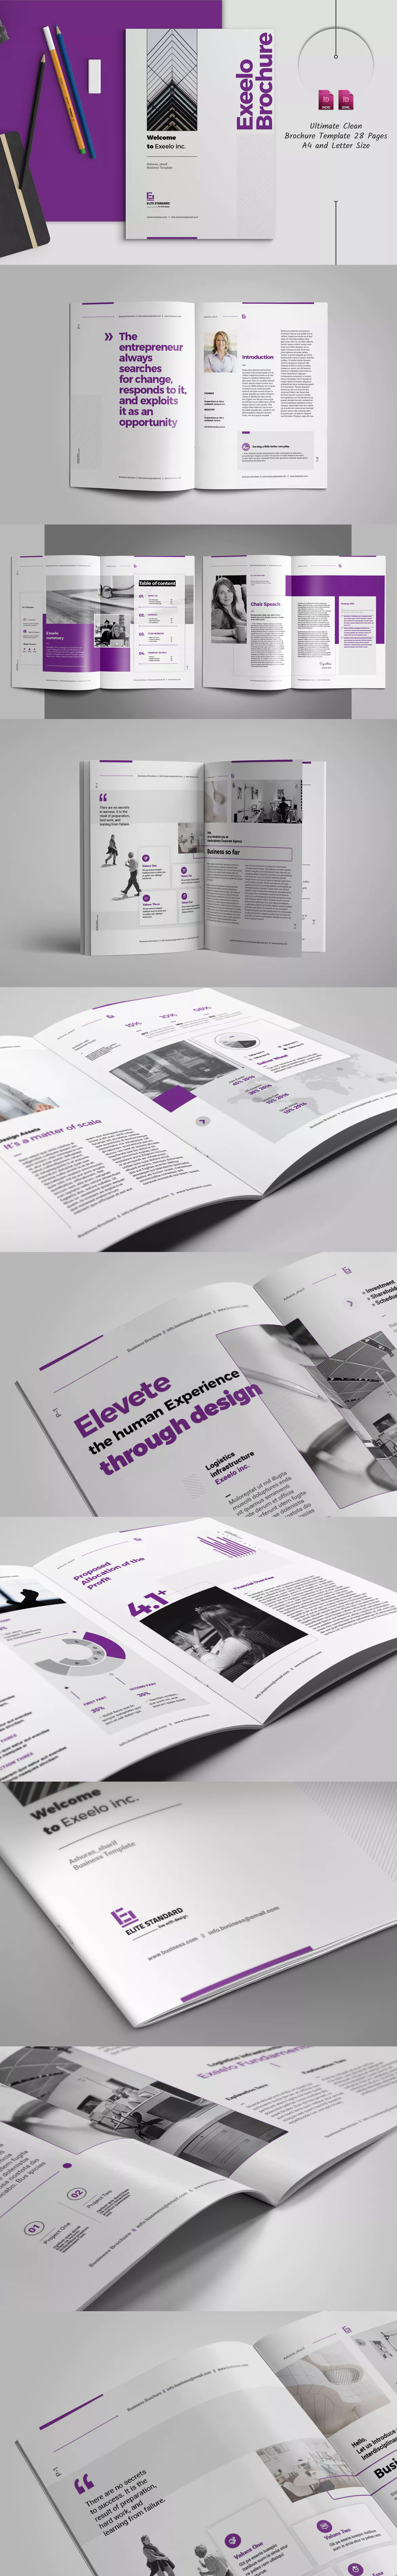 Business Brochure Template InDesign INDD - A4 and US Letter Size ...